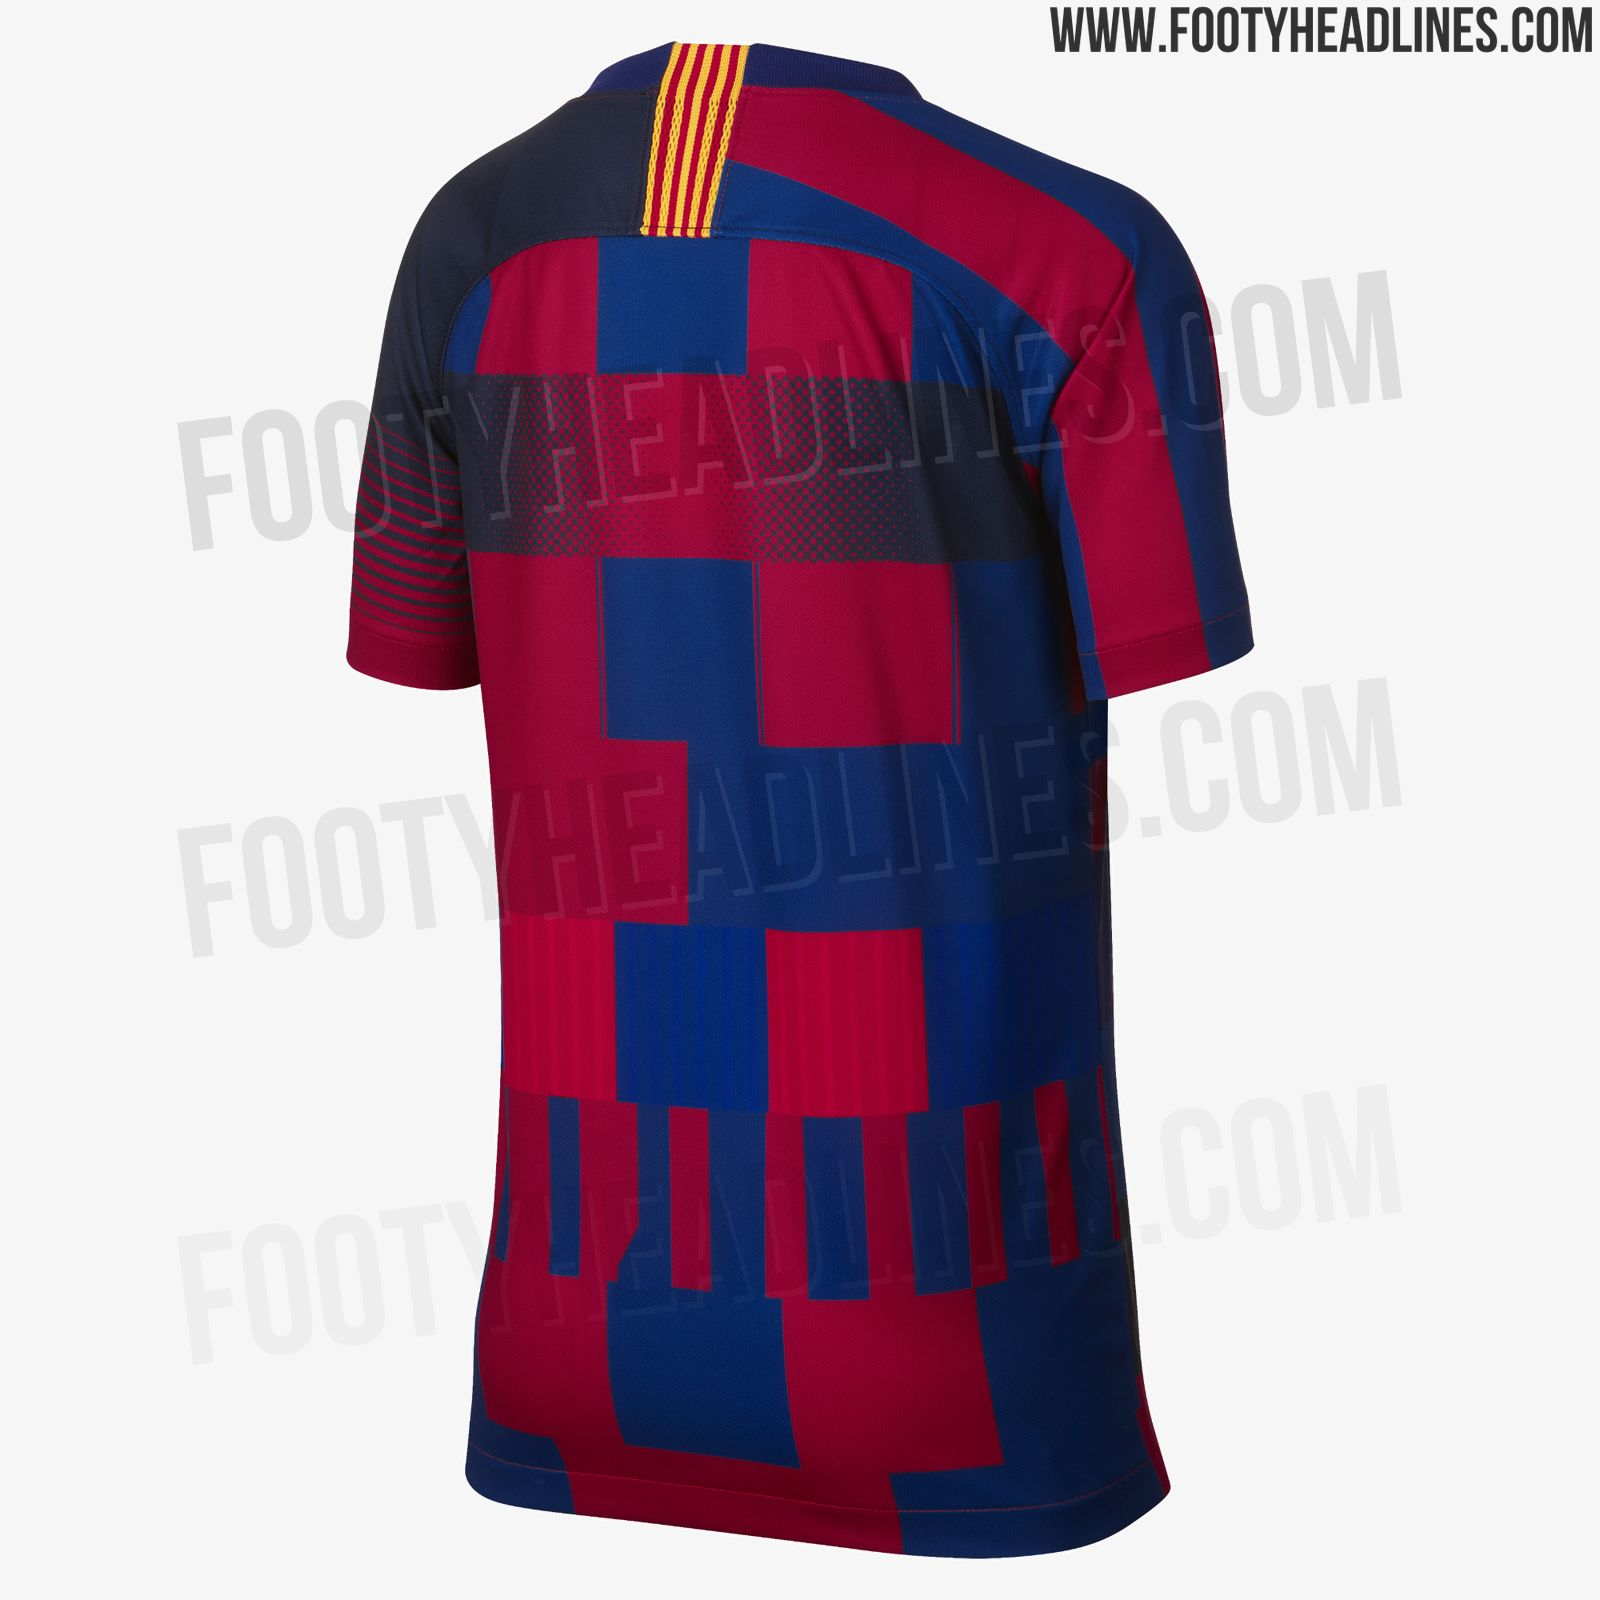 sports shoes 1a293 b99d0 New Official Pictures: Nike FC Barcelona Mashup Jersey ...